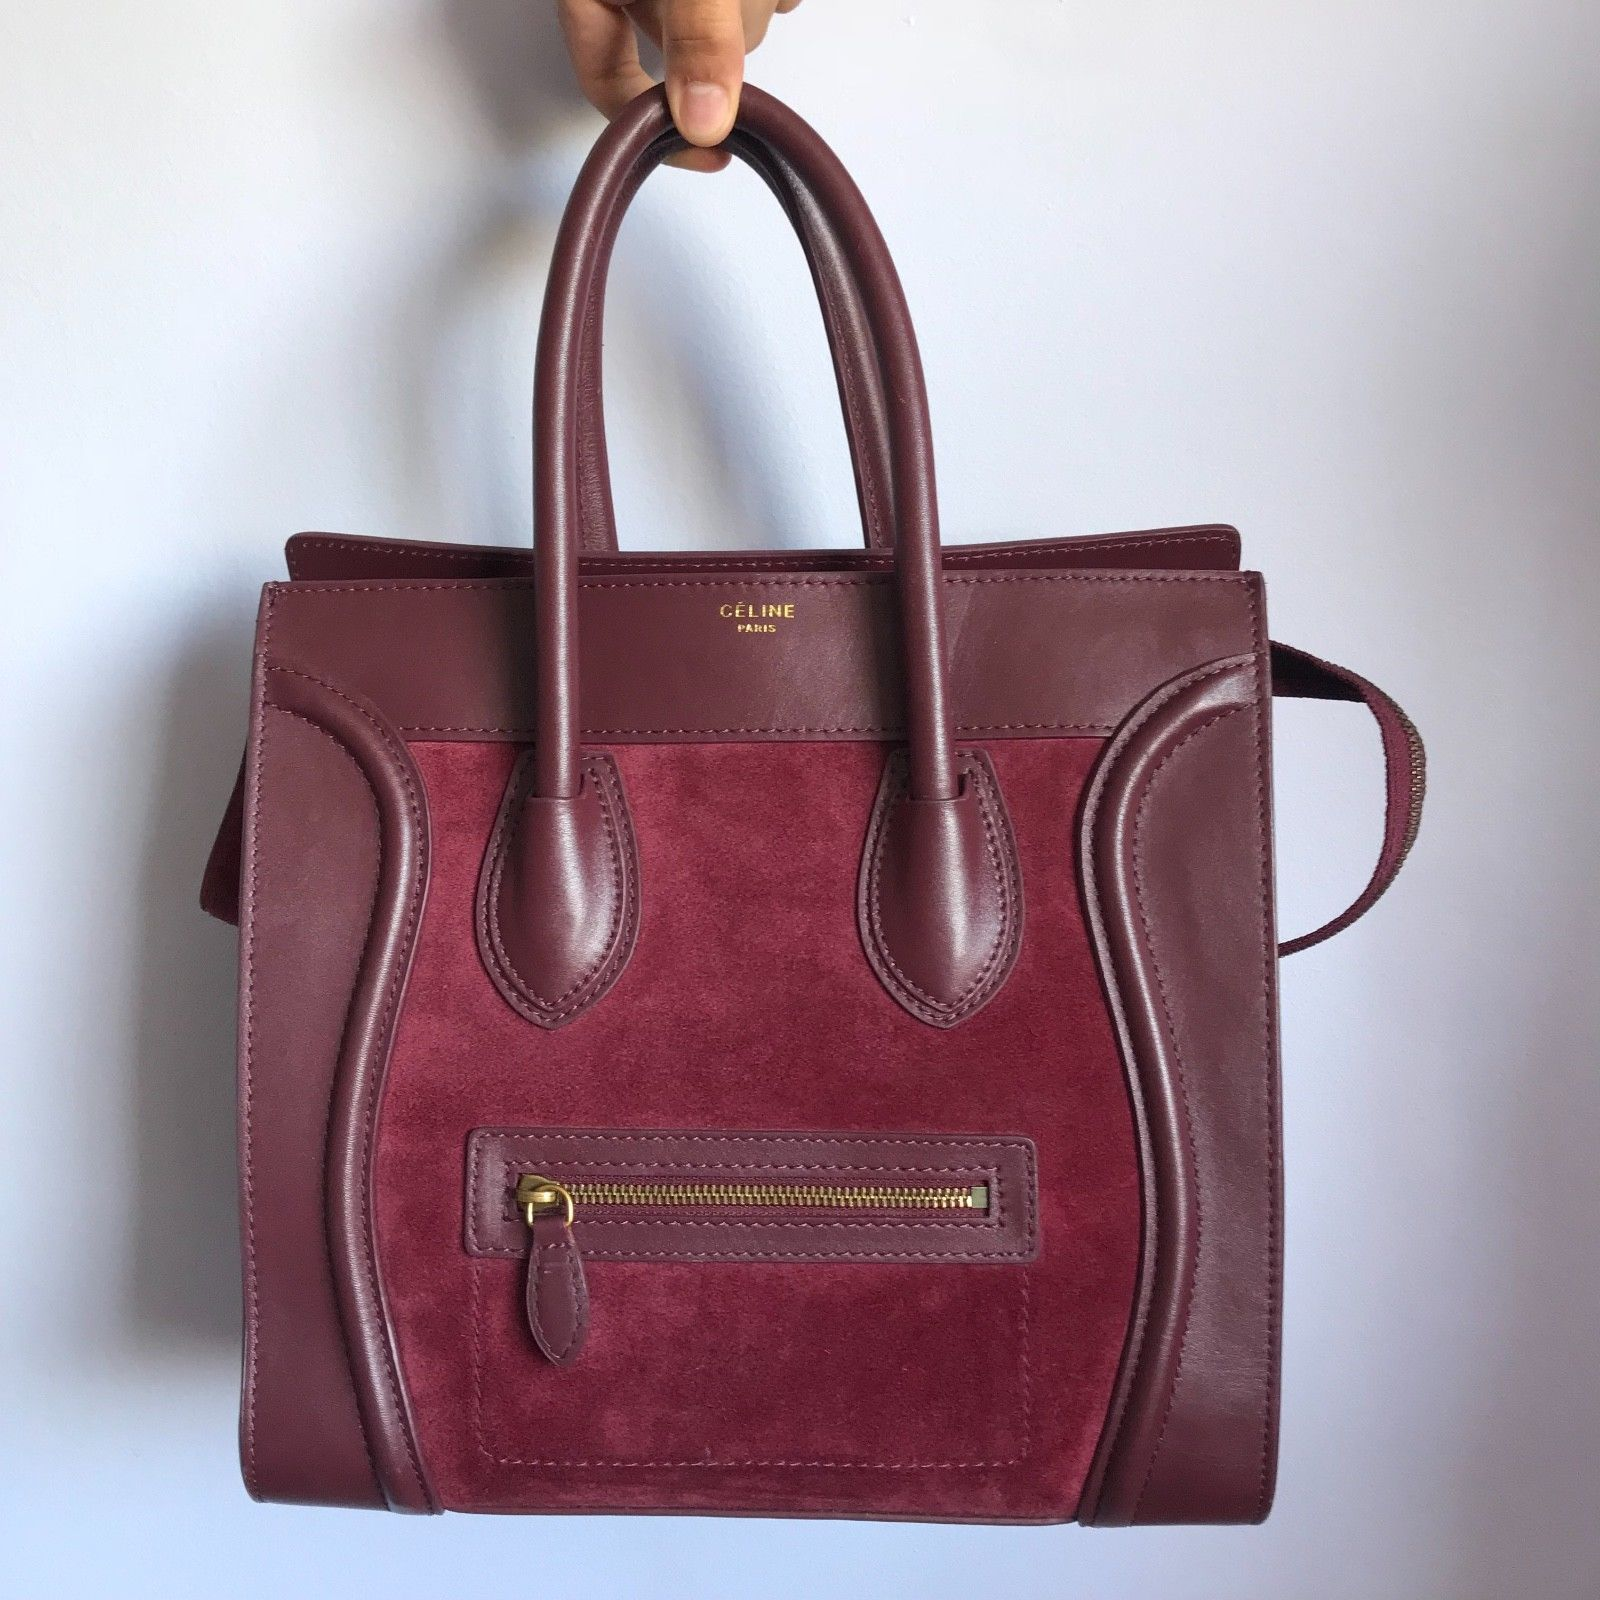 5fca36a368 Details about Auth CELINE Luggage Mini Shopper Light Brown Leather Tote Bag